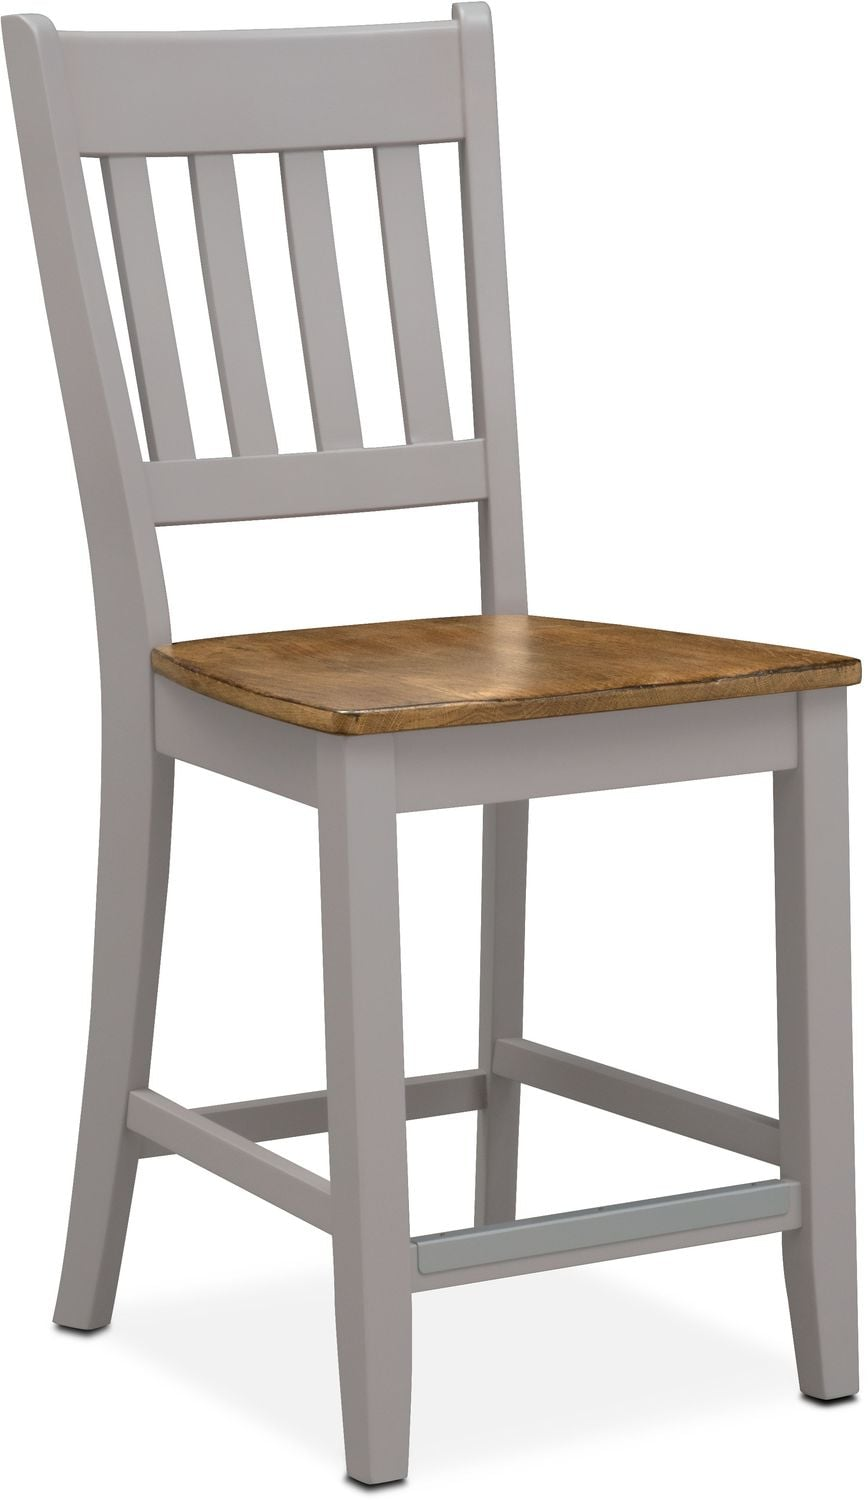 Nantucket Slat-Back Counter-Height Chair - Maple